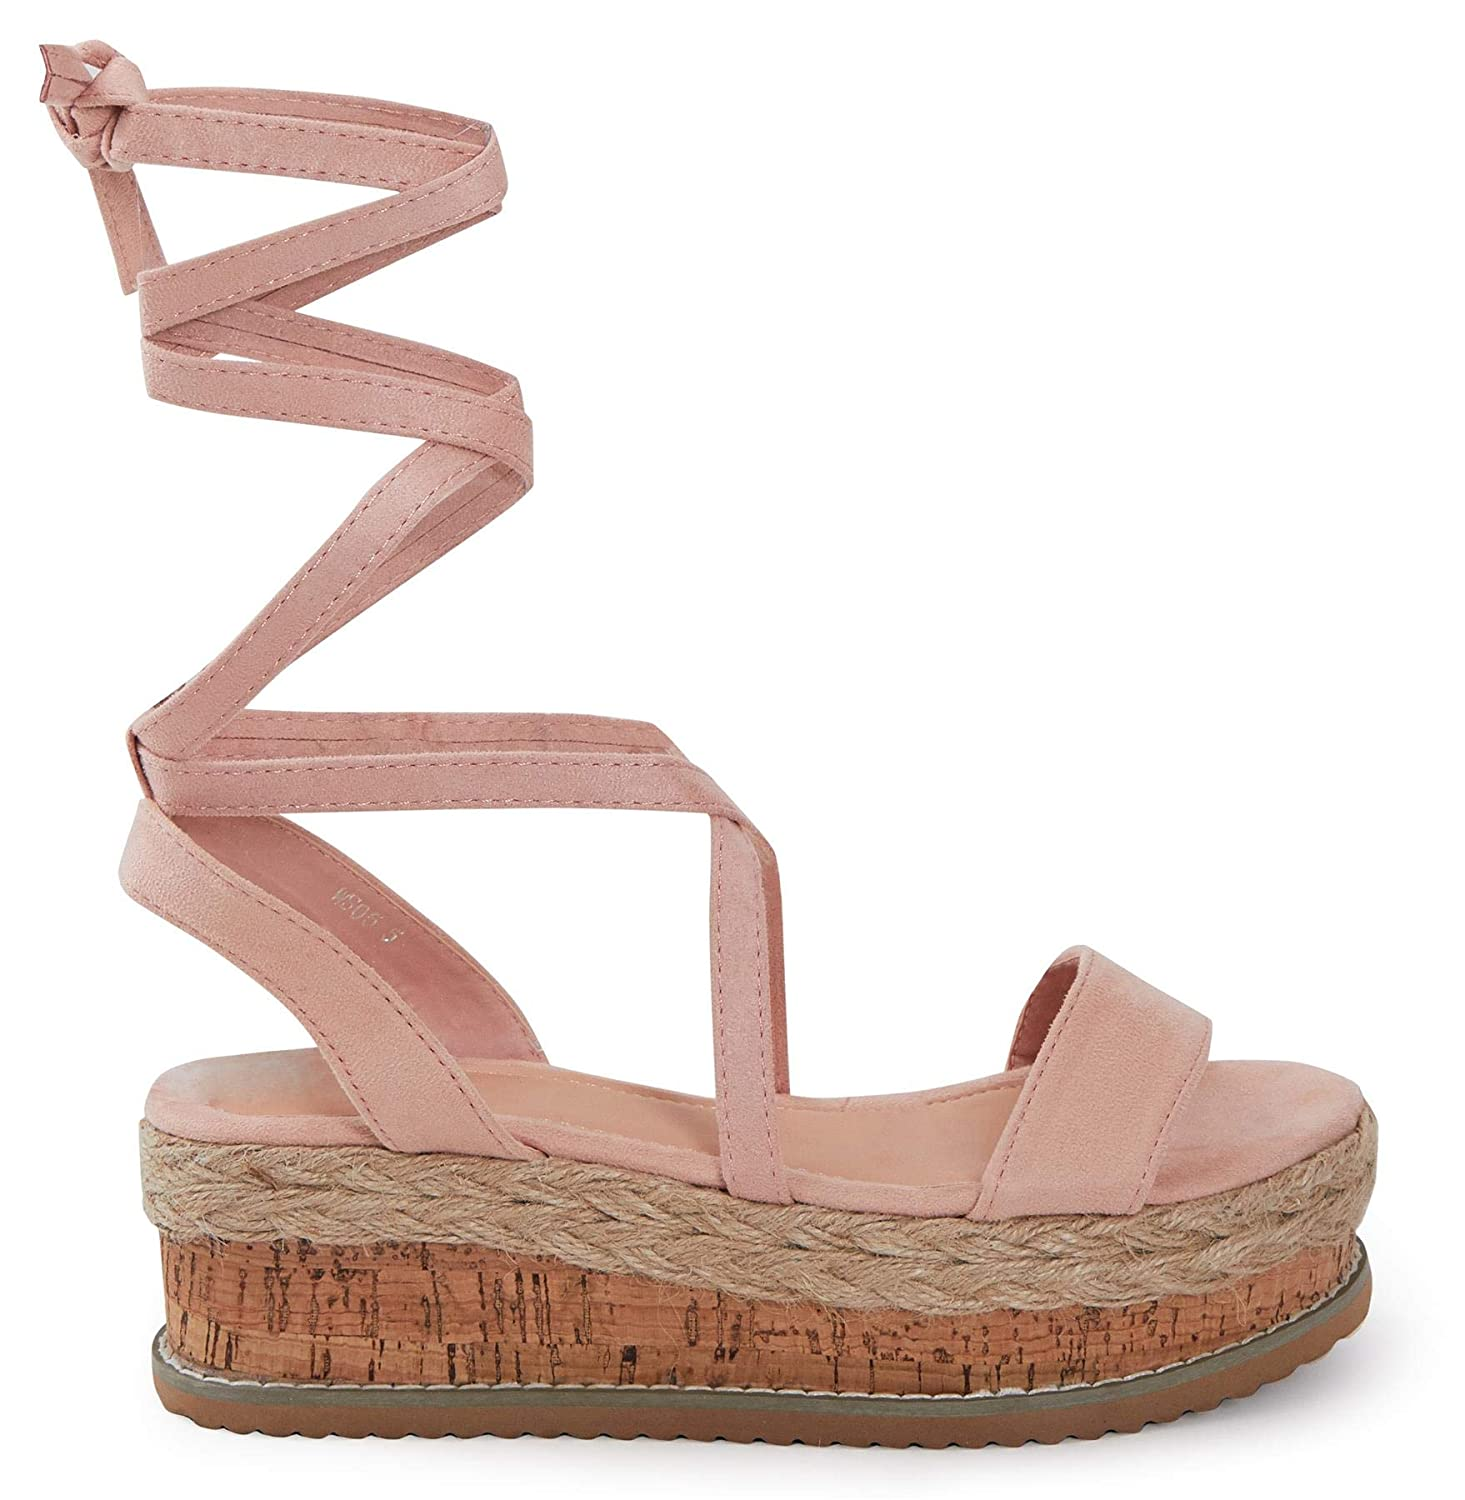 shelikes Womens Ladies Flat Wedge Espadrille Lace Tie Up Sandals Platform Summer Shoes